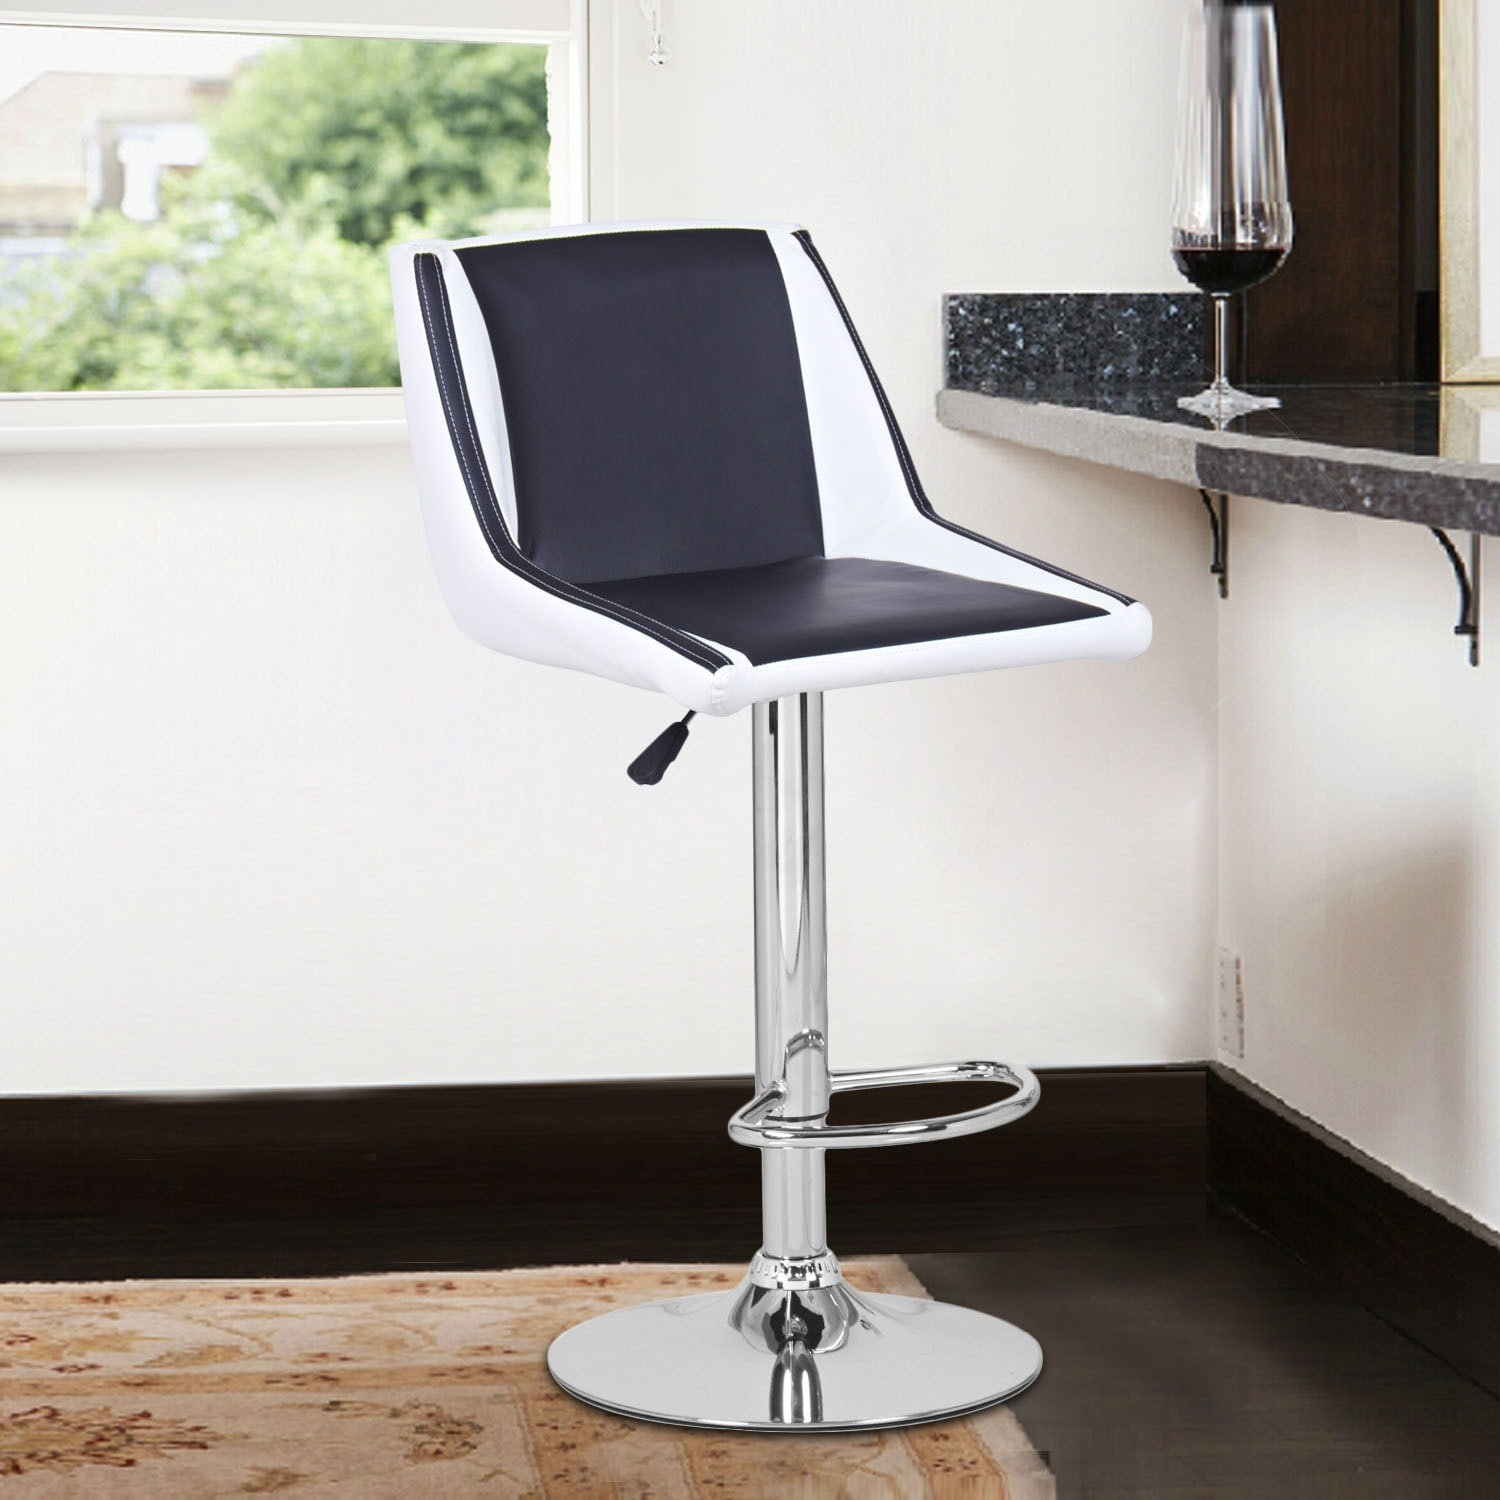 Adeco Black/White Hydraulic Lift Adjustable Barstool Chai...